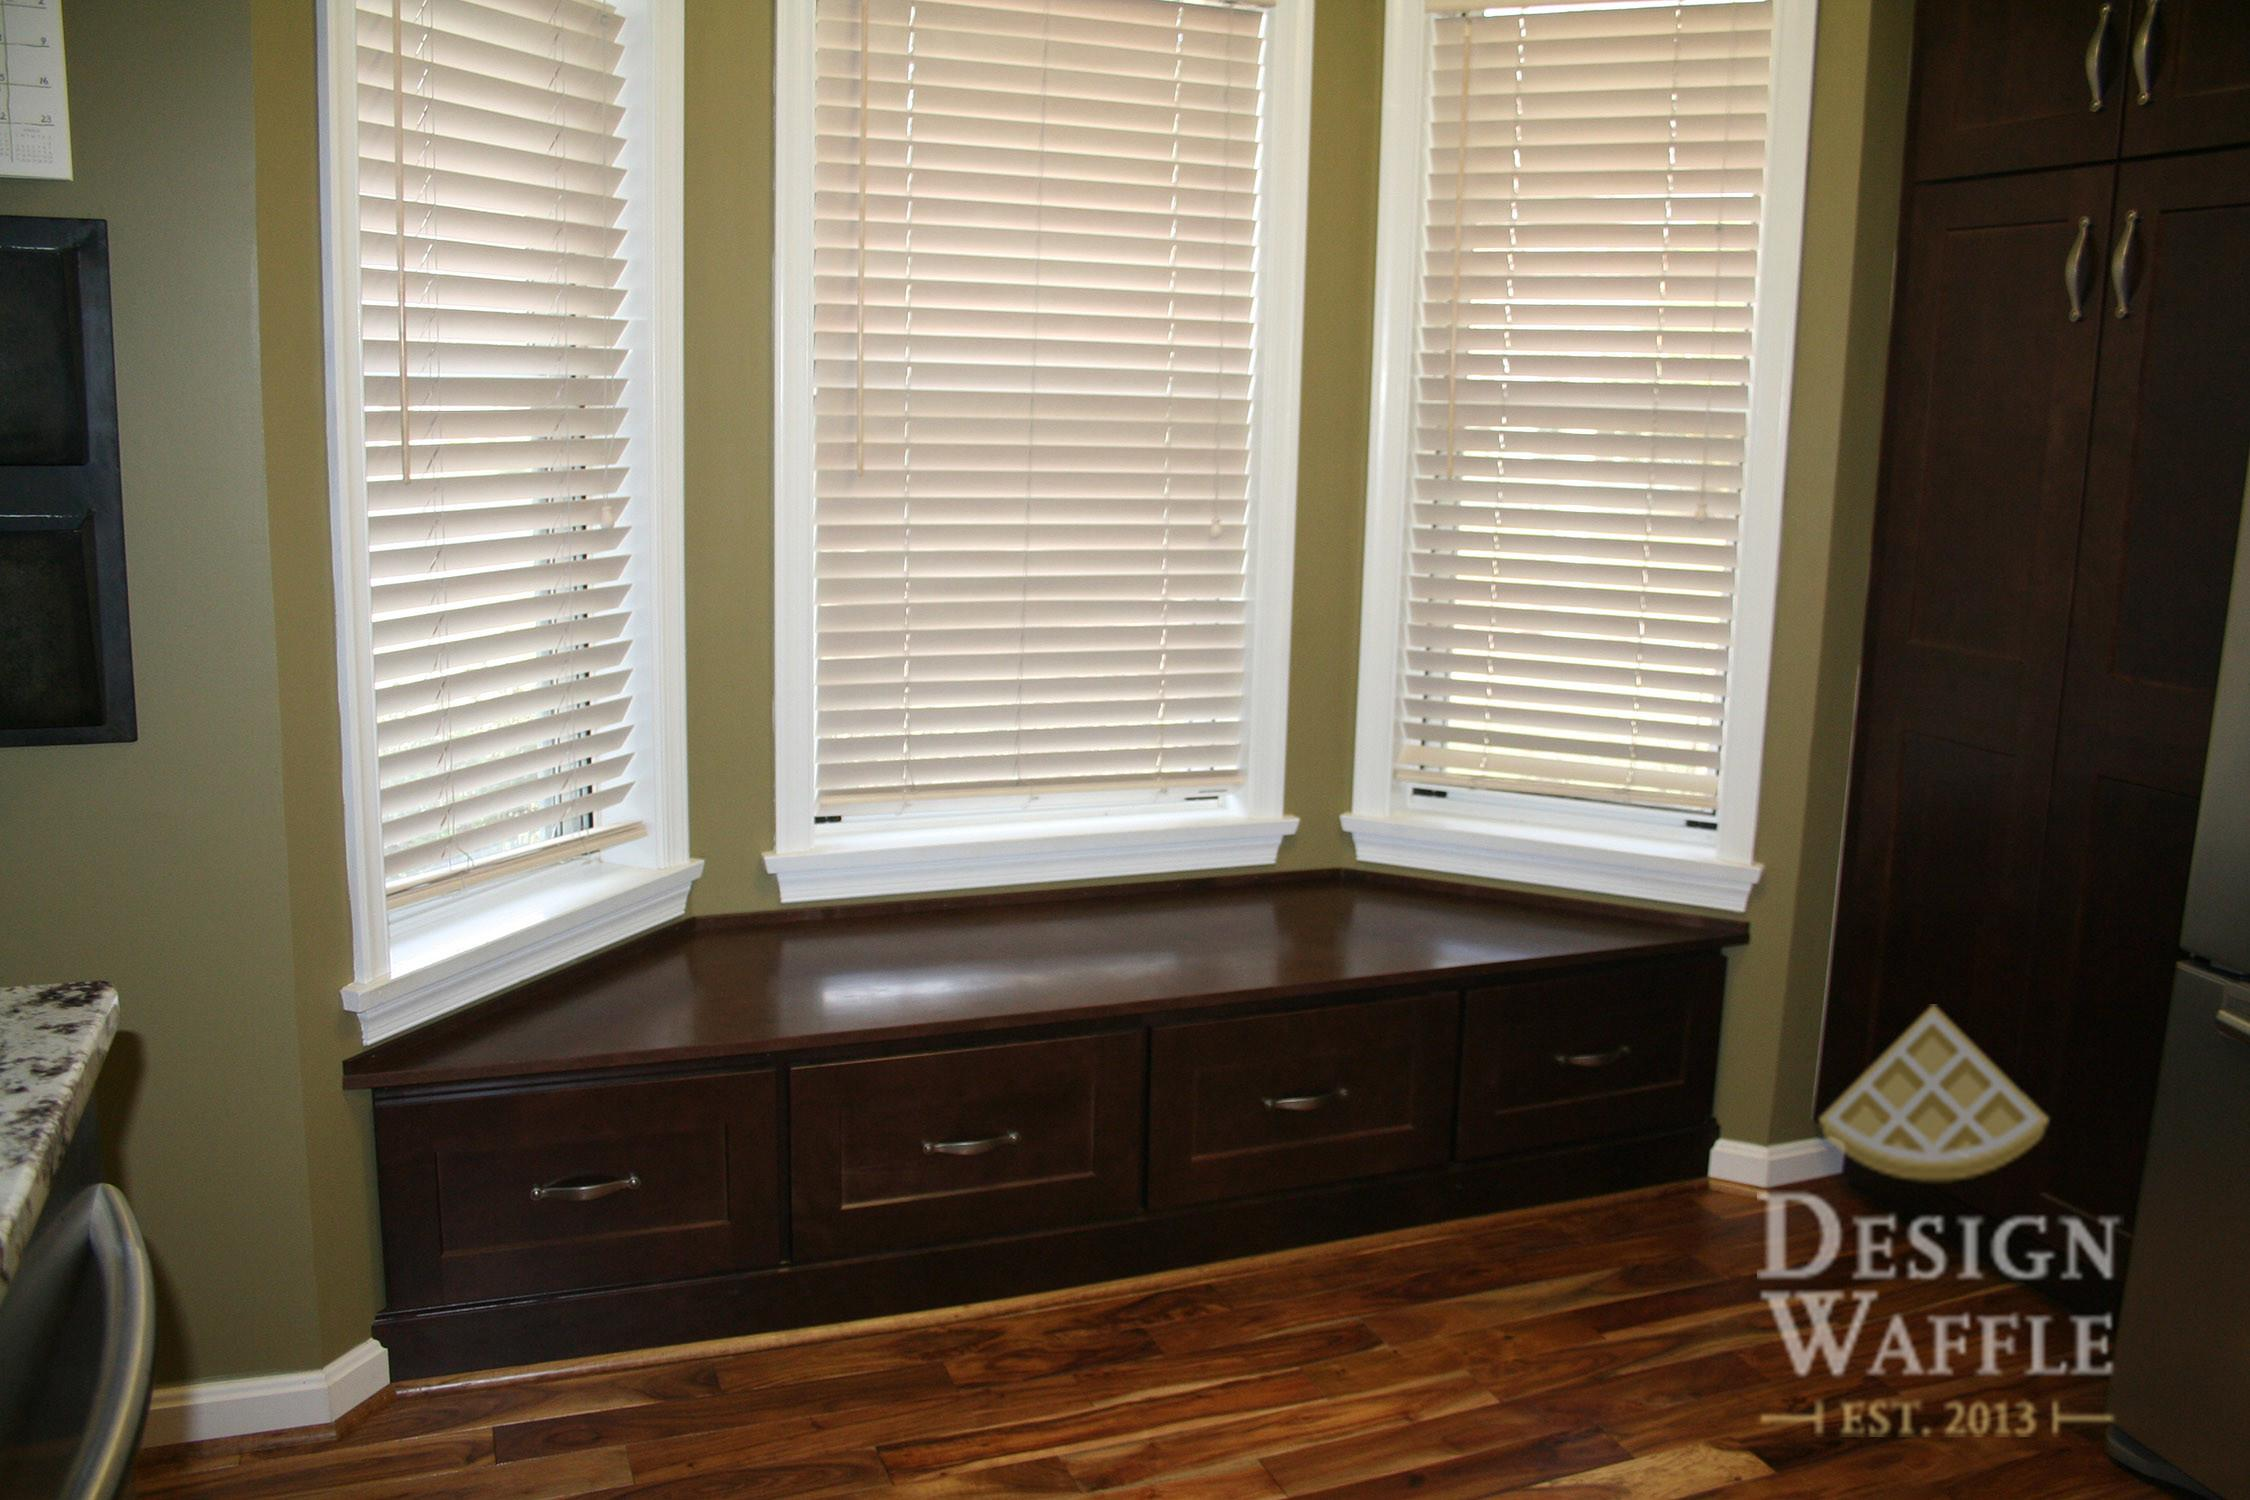 Sewing Bay Window Seat Cushion Design Waffle